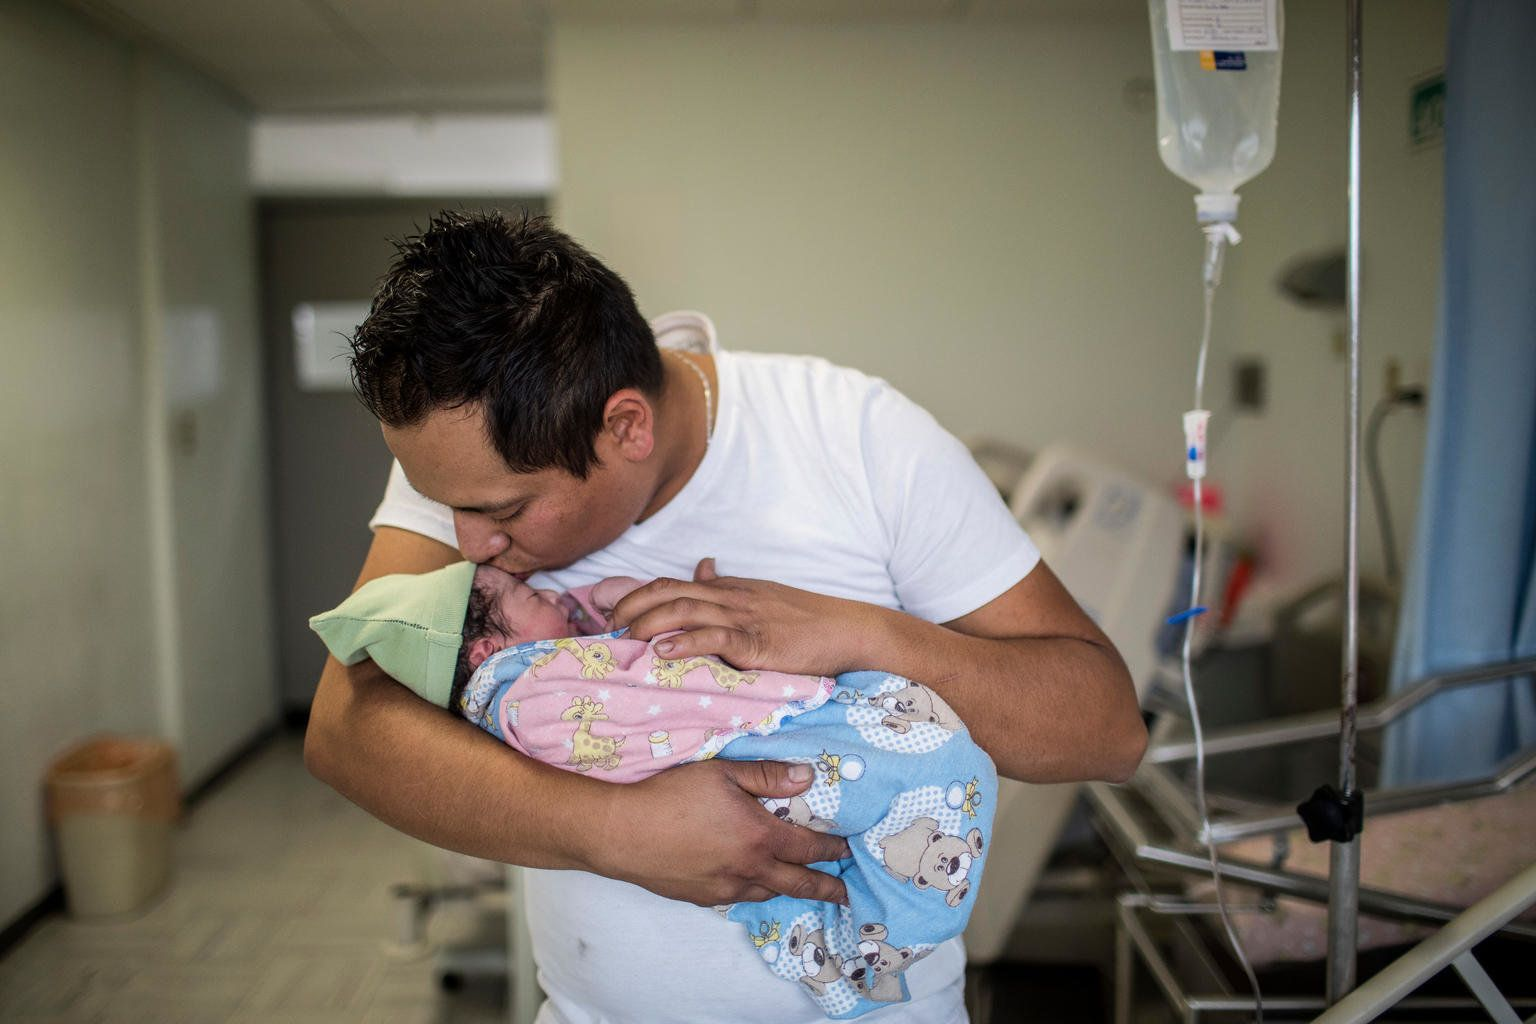 Yair Cruz, 26, holds his newborn baby girl and third child, Mia Gisele, at the Instituto Nacional de Perinatología hospital in Mexico City.